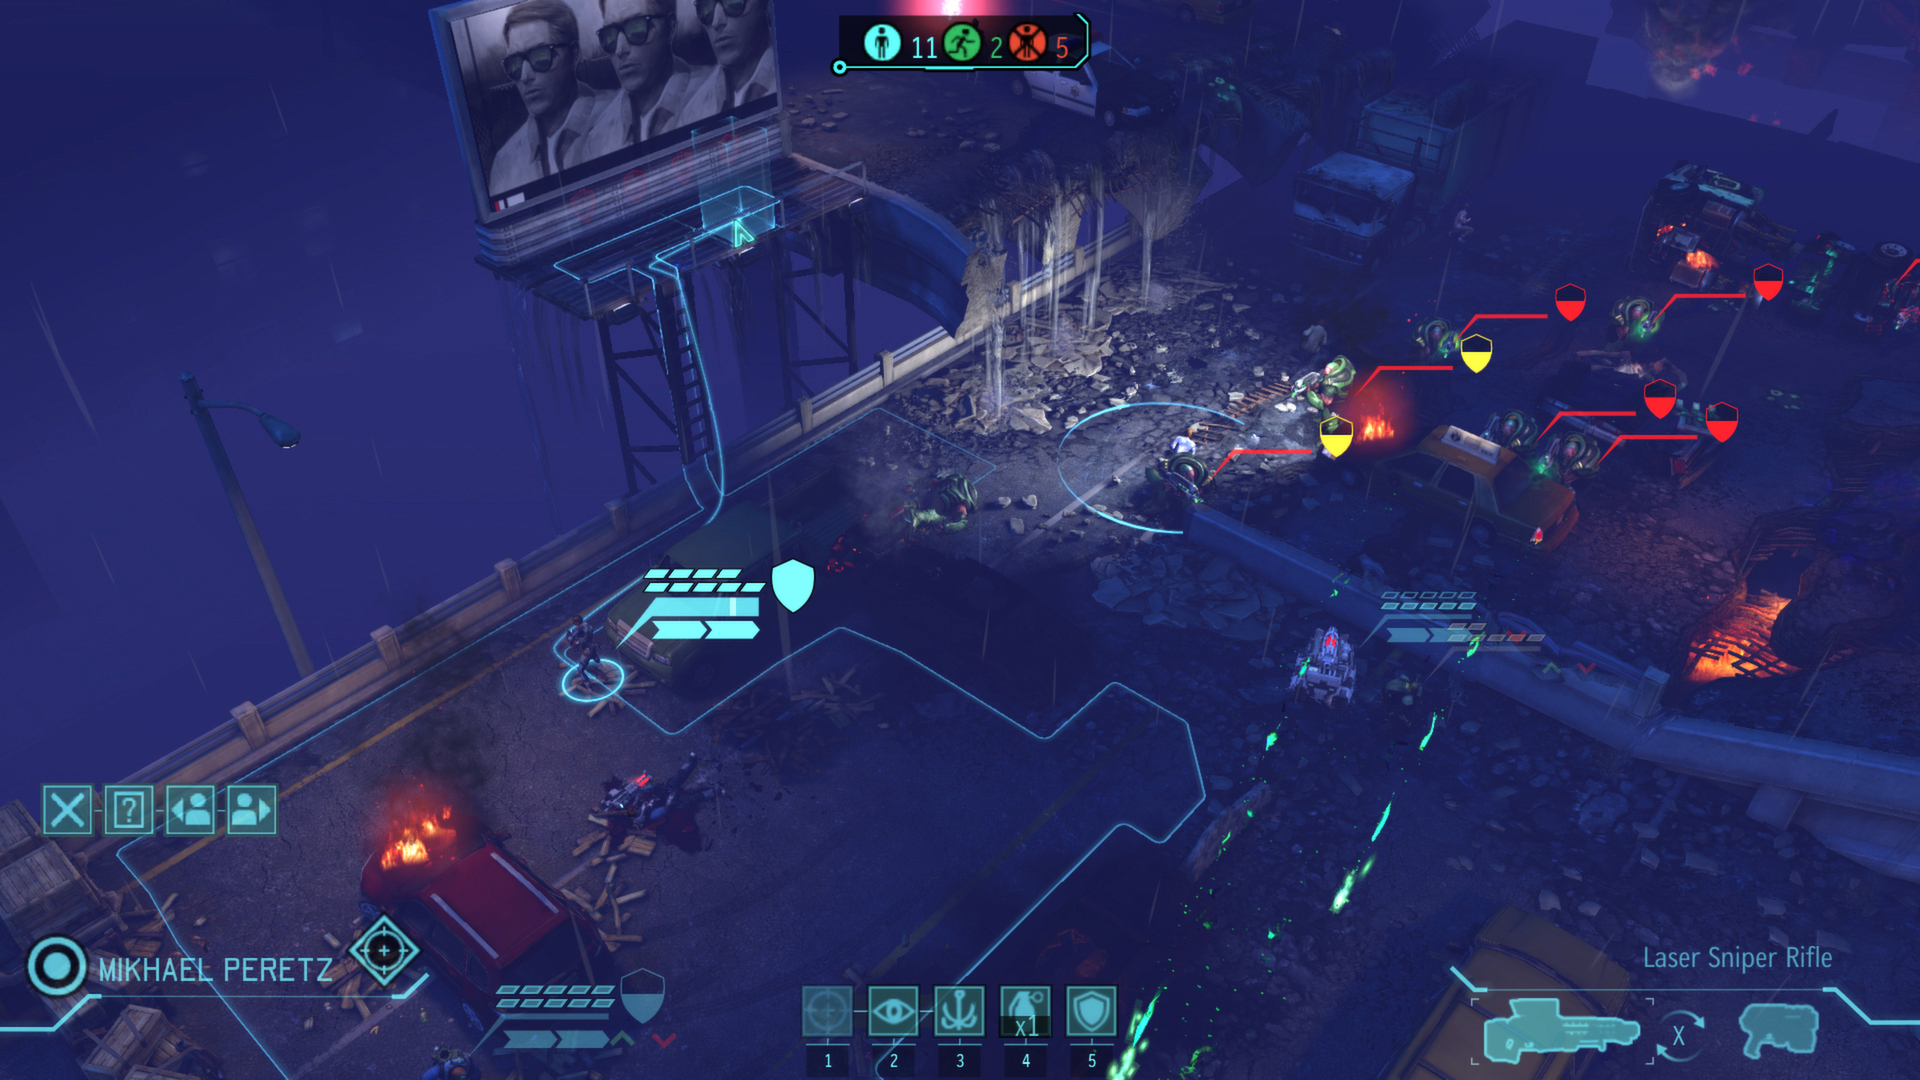 Every moves and decisions you make in XCOM: Enemy Within will influence the outcome of the game